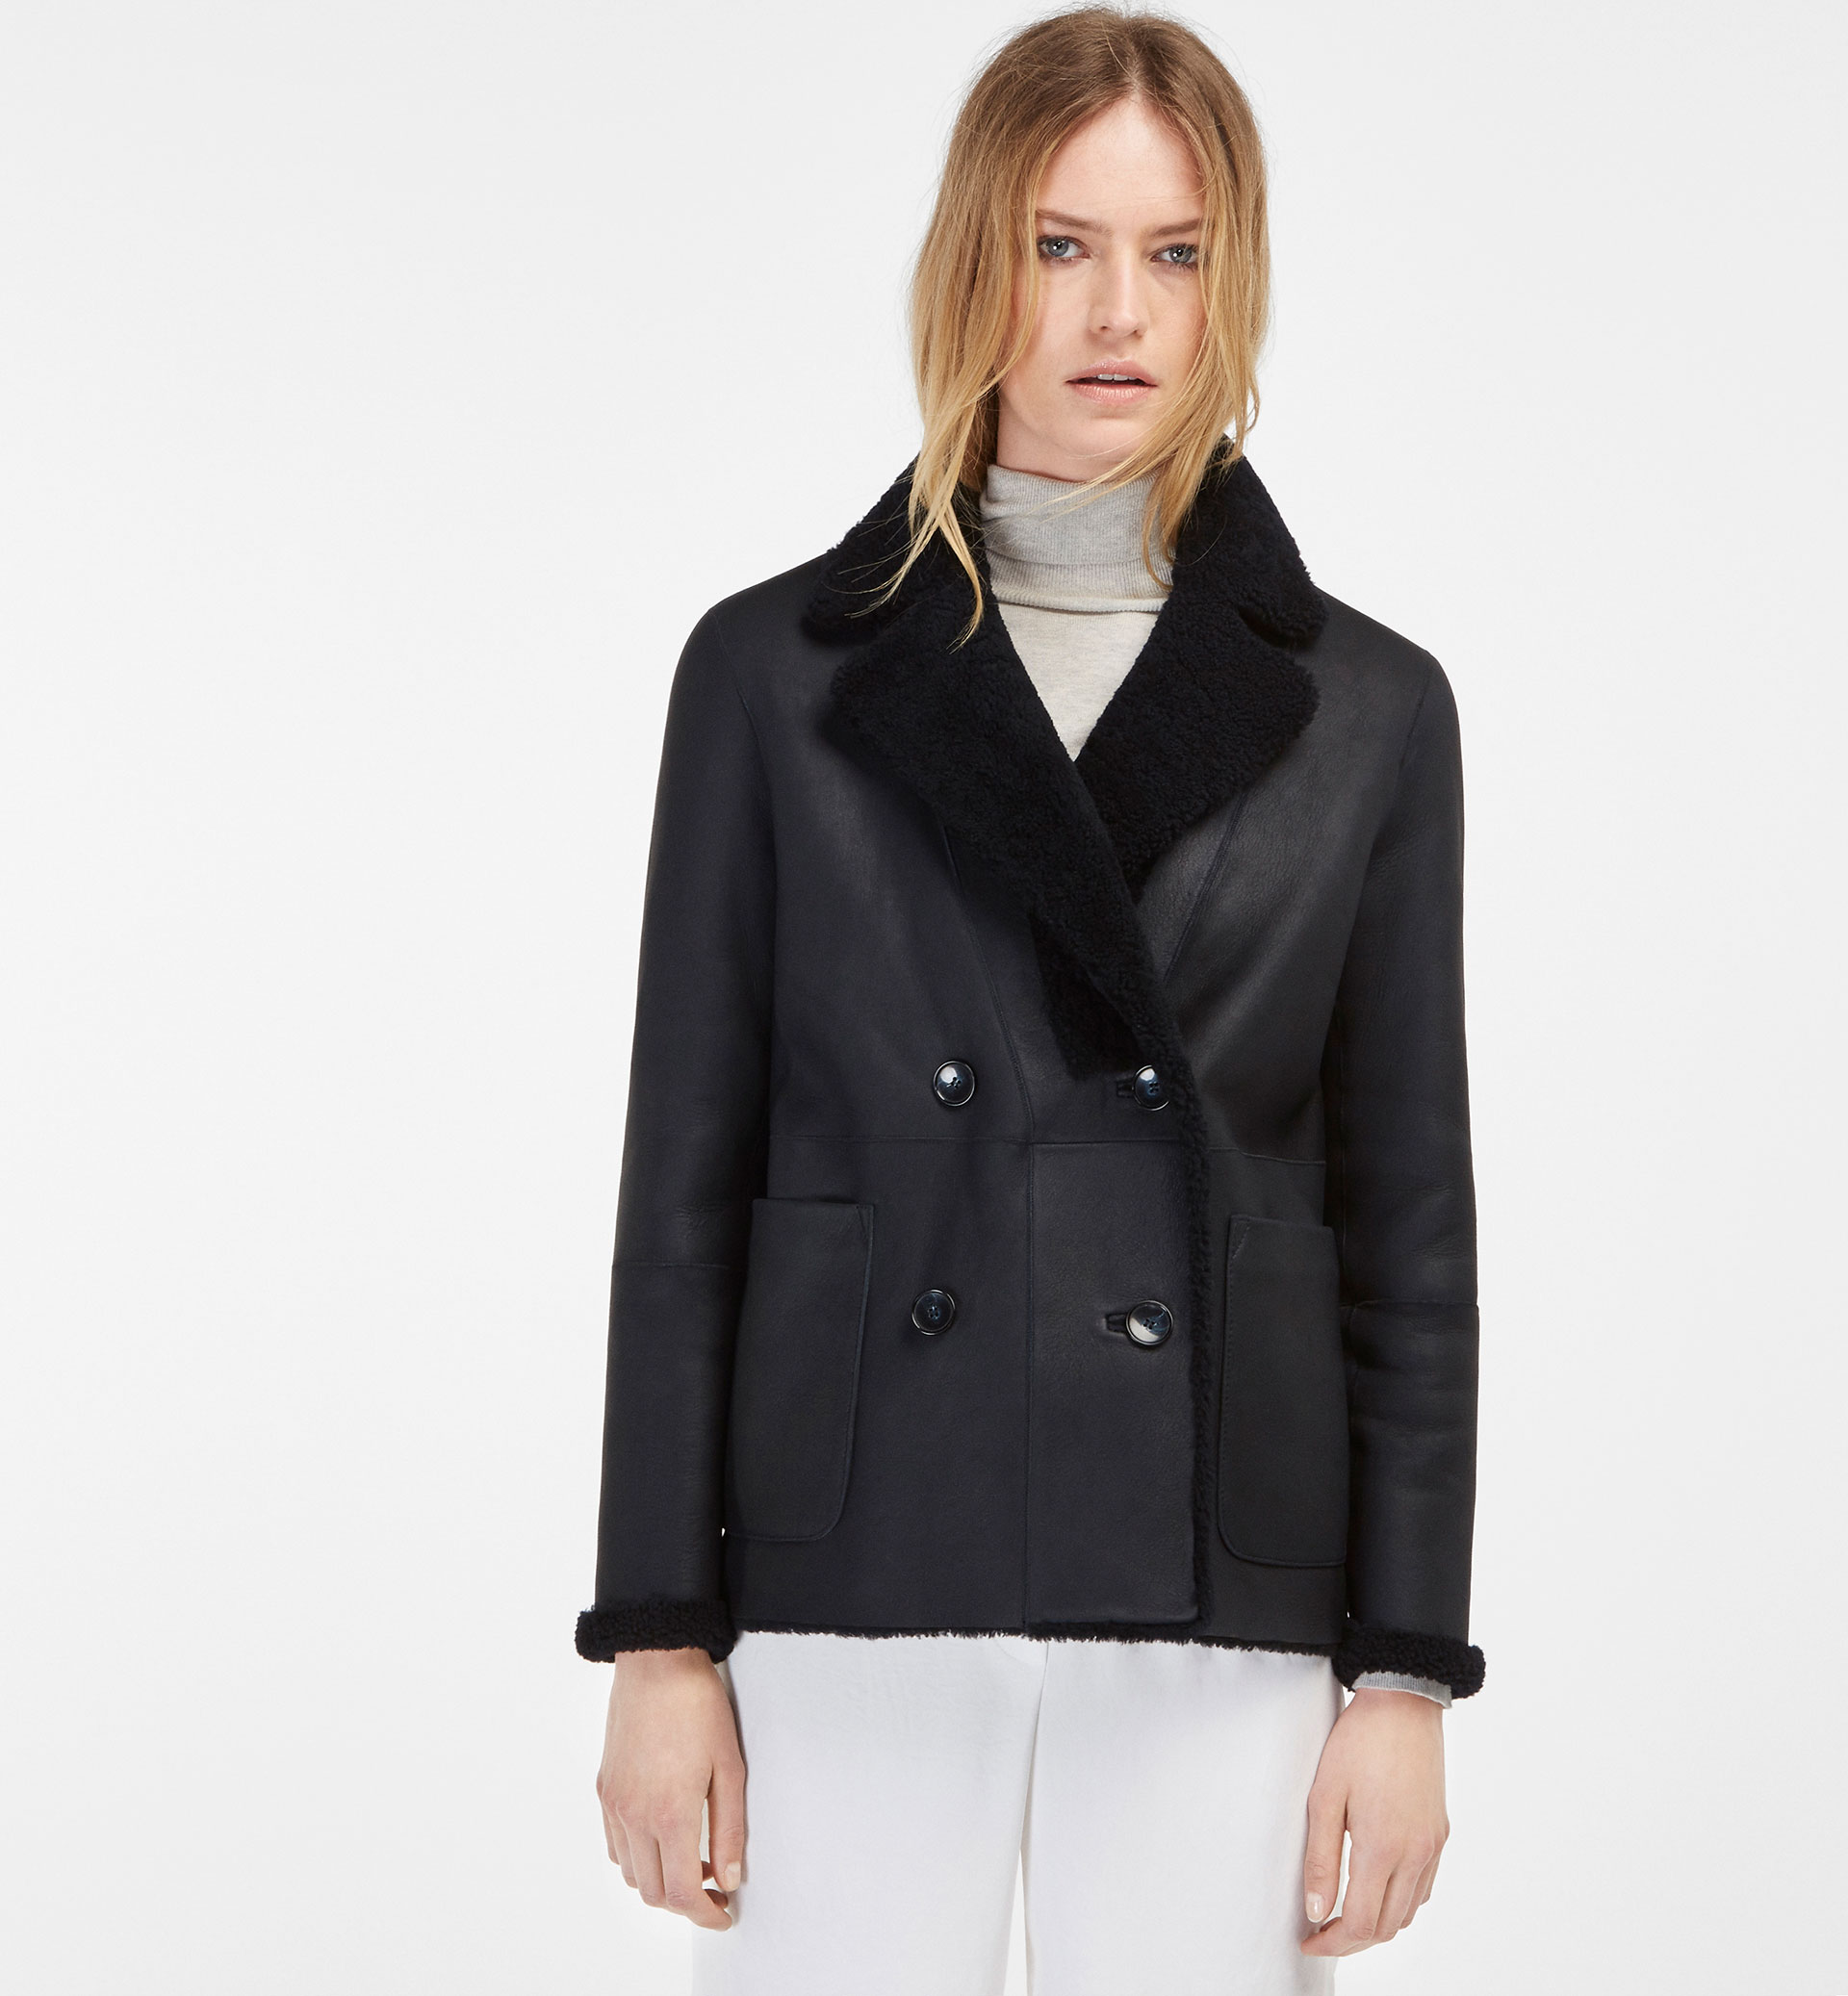 REVERSIBLE NAVY DOUBLE-SIDED 3/4 LENGTH JACKET